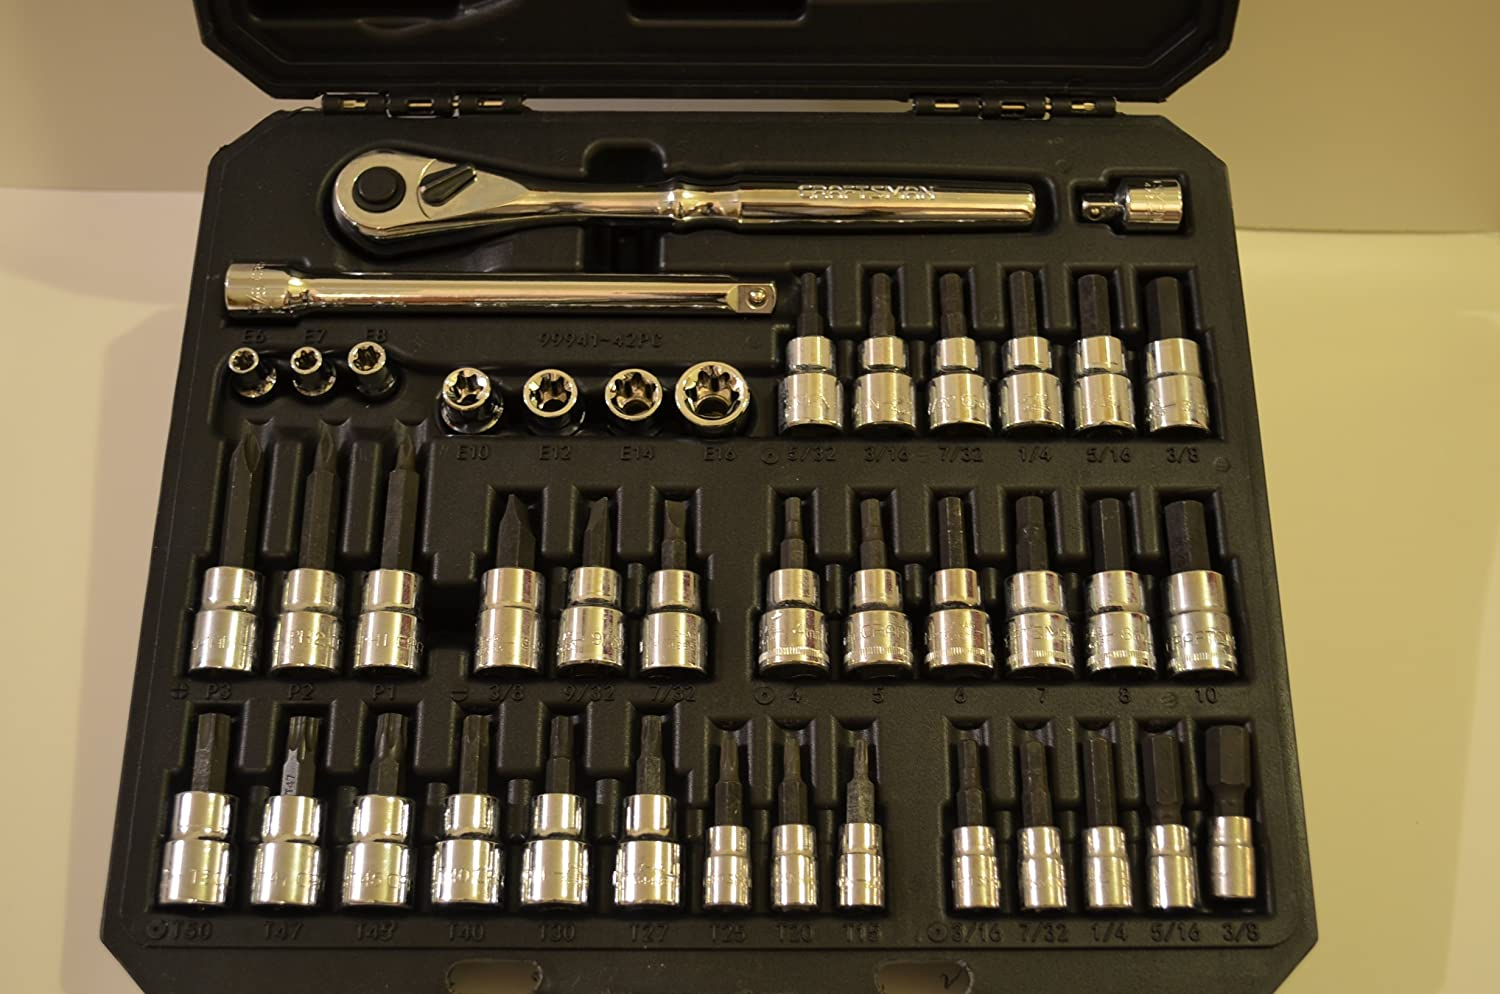 8602685f4c9 Craftsman 42 piece Drive Bit and Torx Bit Socket Wrench Set with Polished  Ratchet - - Amazon.com